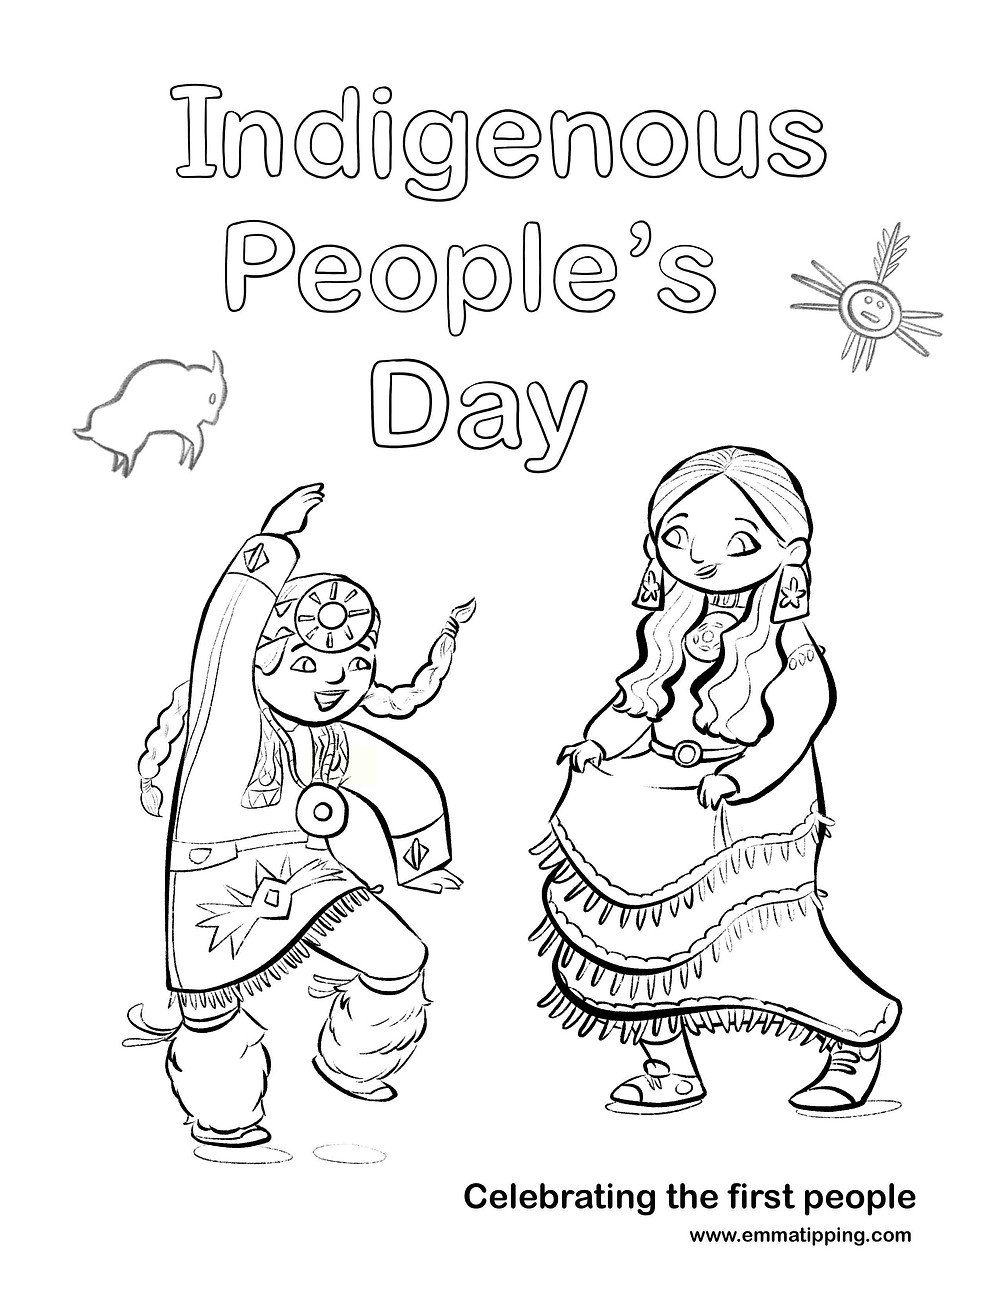 I created a FREE coloring page to help families and educators celebrate Indigenous Peoples' Day with the children in their lives.